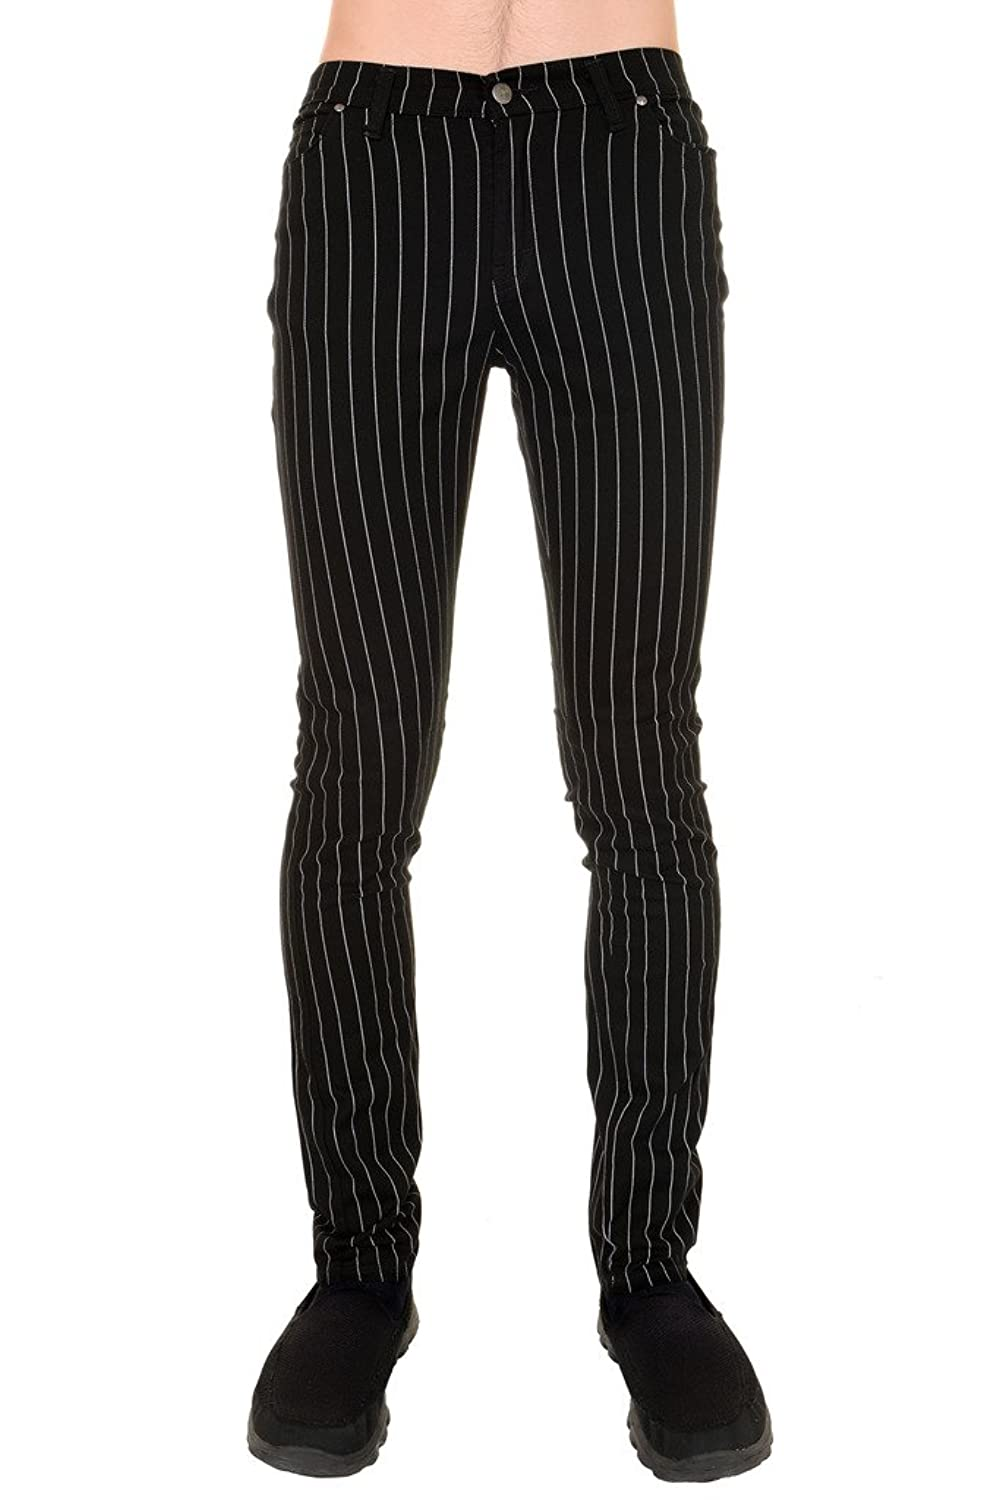 Men's Vintage Pants, Trousers, Jeans, Overalls Run Fly Retro 60s 70s Mod Black White Pin Striped Stretch Skinny Jeans $51.95 AT vintagedancer.com